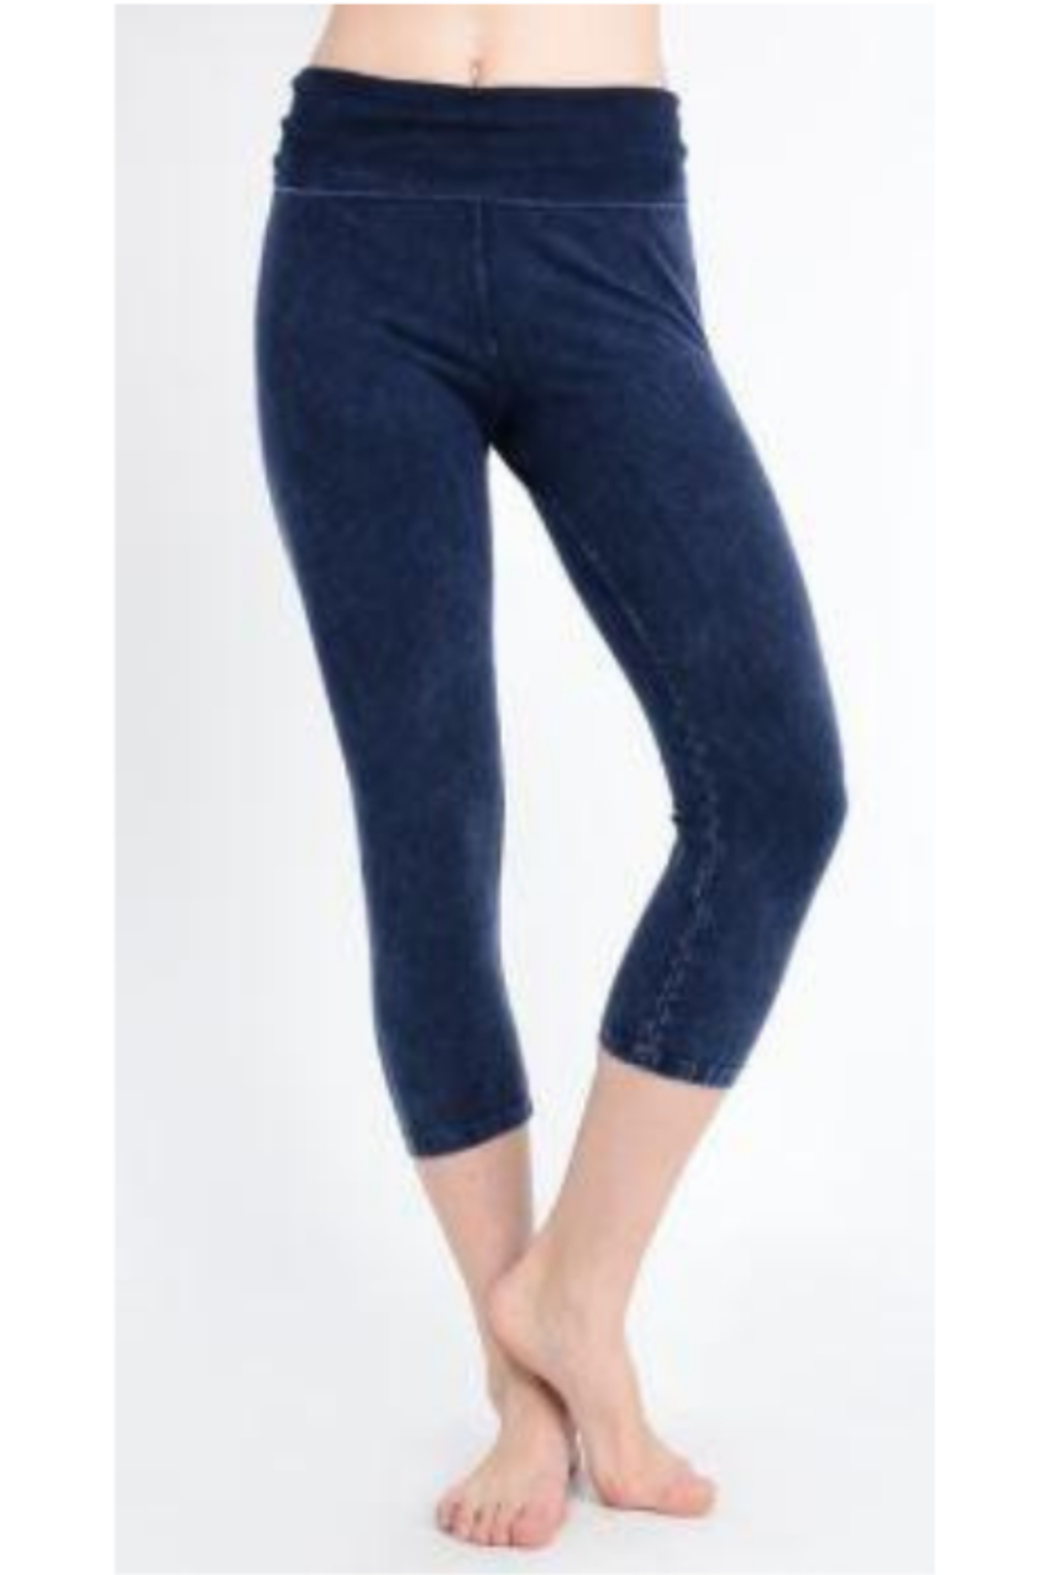 T Party Mineral Washed Capri Length Cropped Yoga Leggings - Main Image